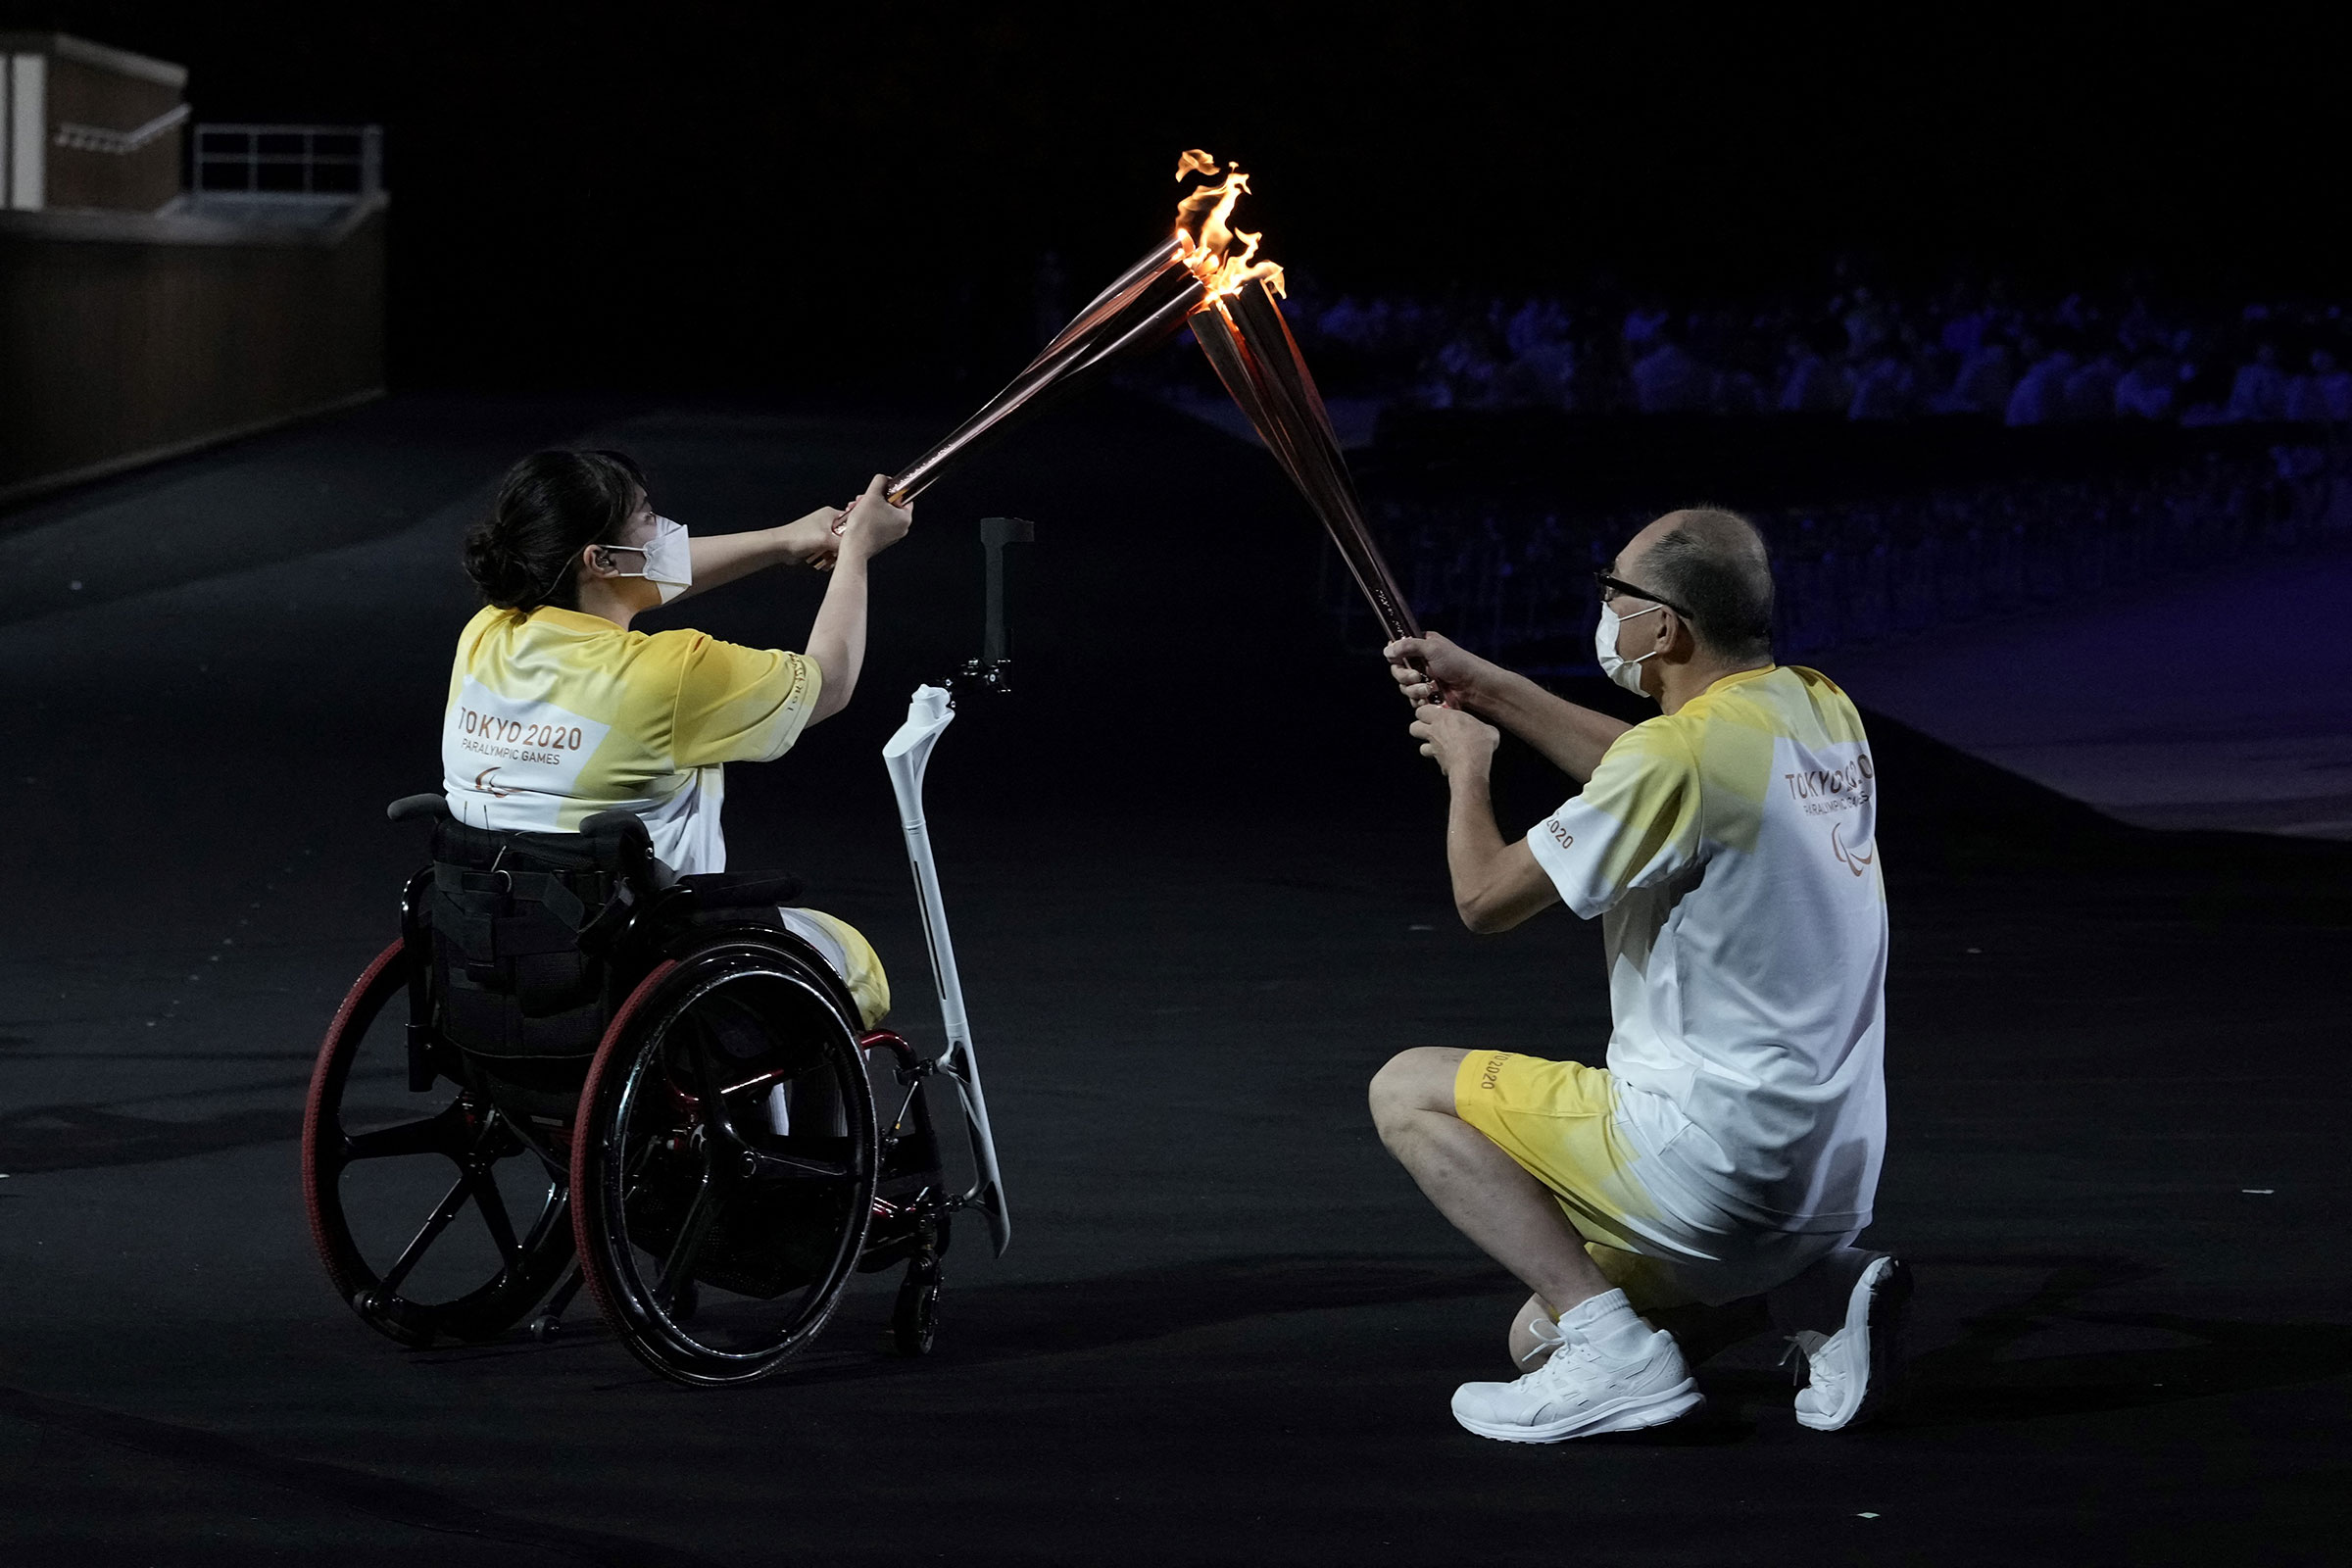 The Paralympic flame is passed between torchbearers during the opening ceremony for the Tokyo 2020 Paralympic Games at the Olympic Stadium in Tokyo on August 24, 2021.